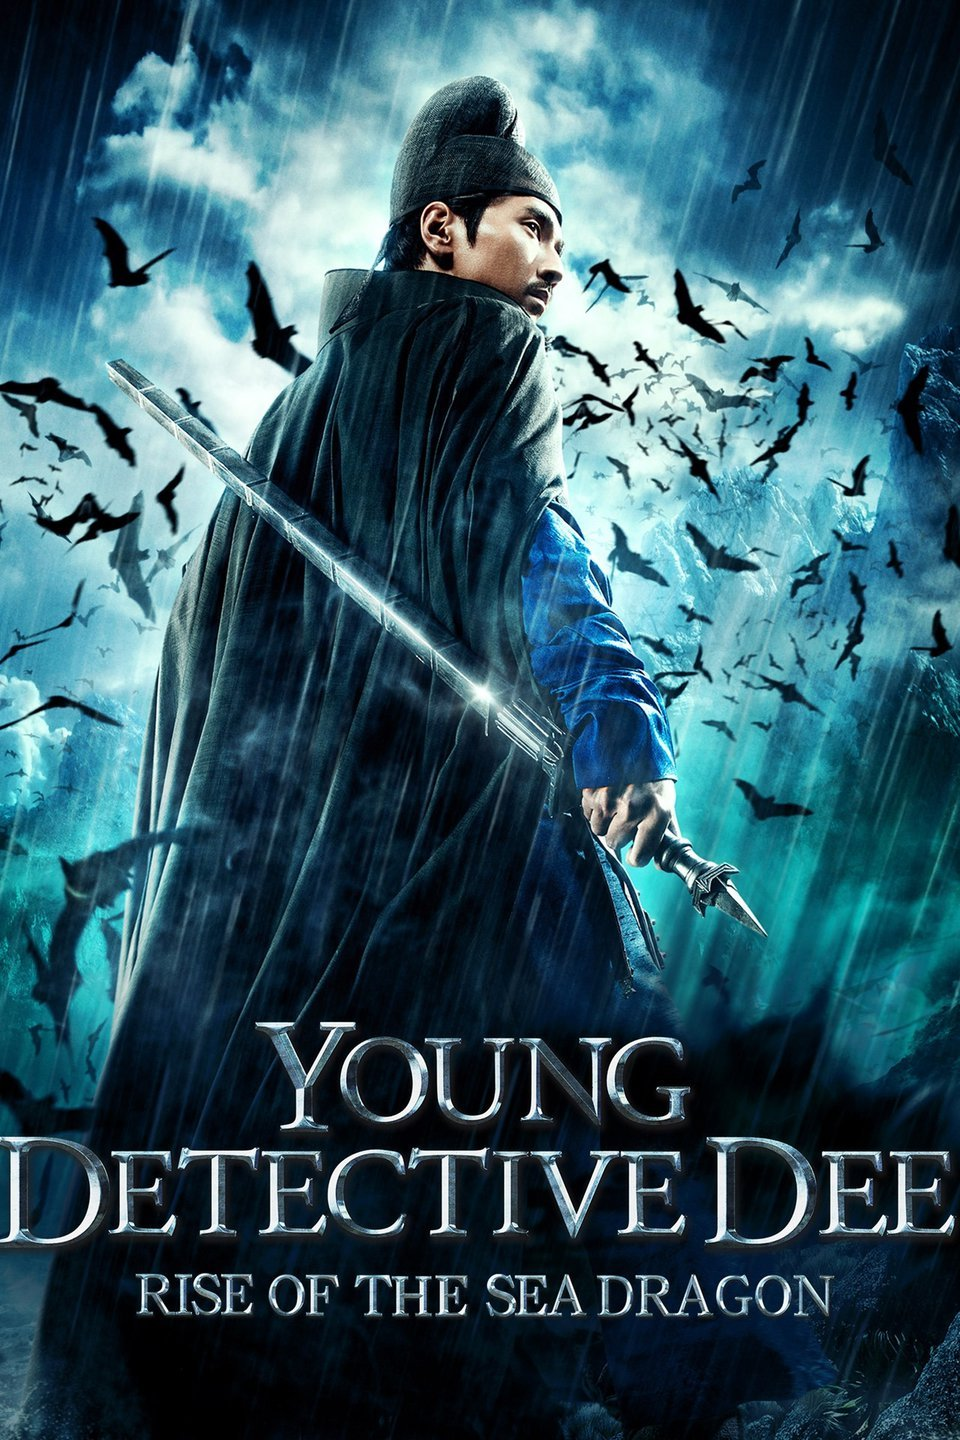 Young Detective Dee: Rise of the Sea Dragon 2013